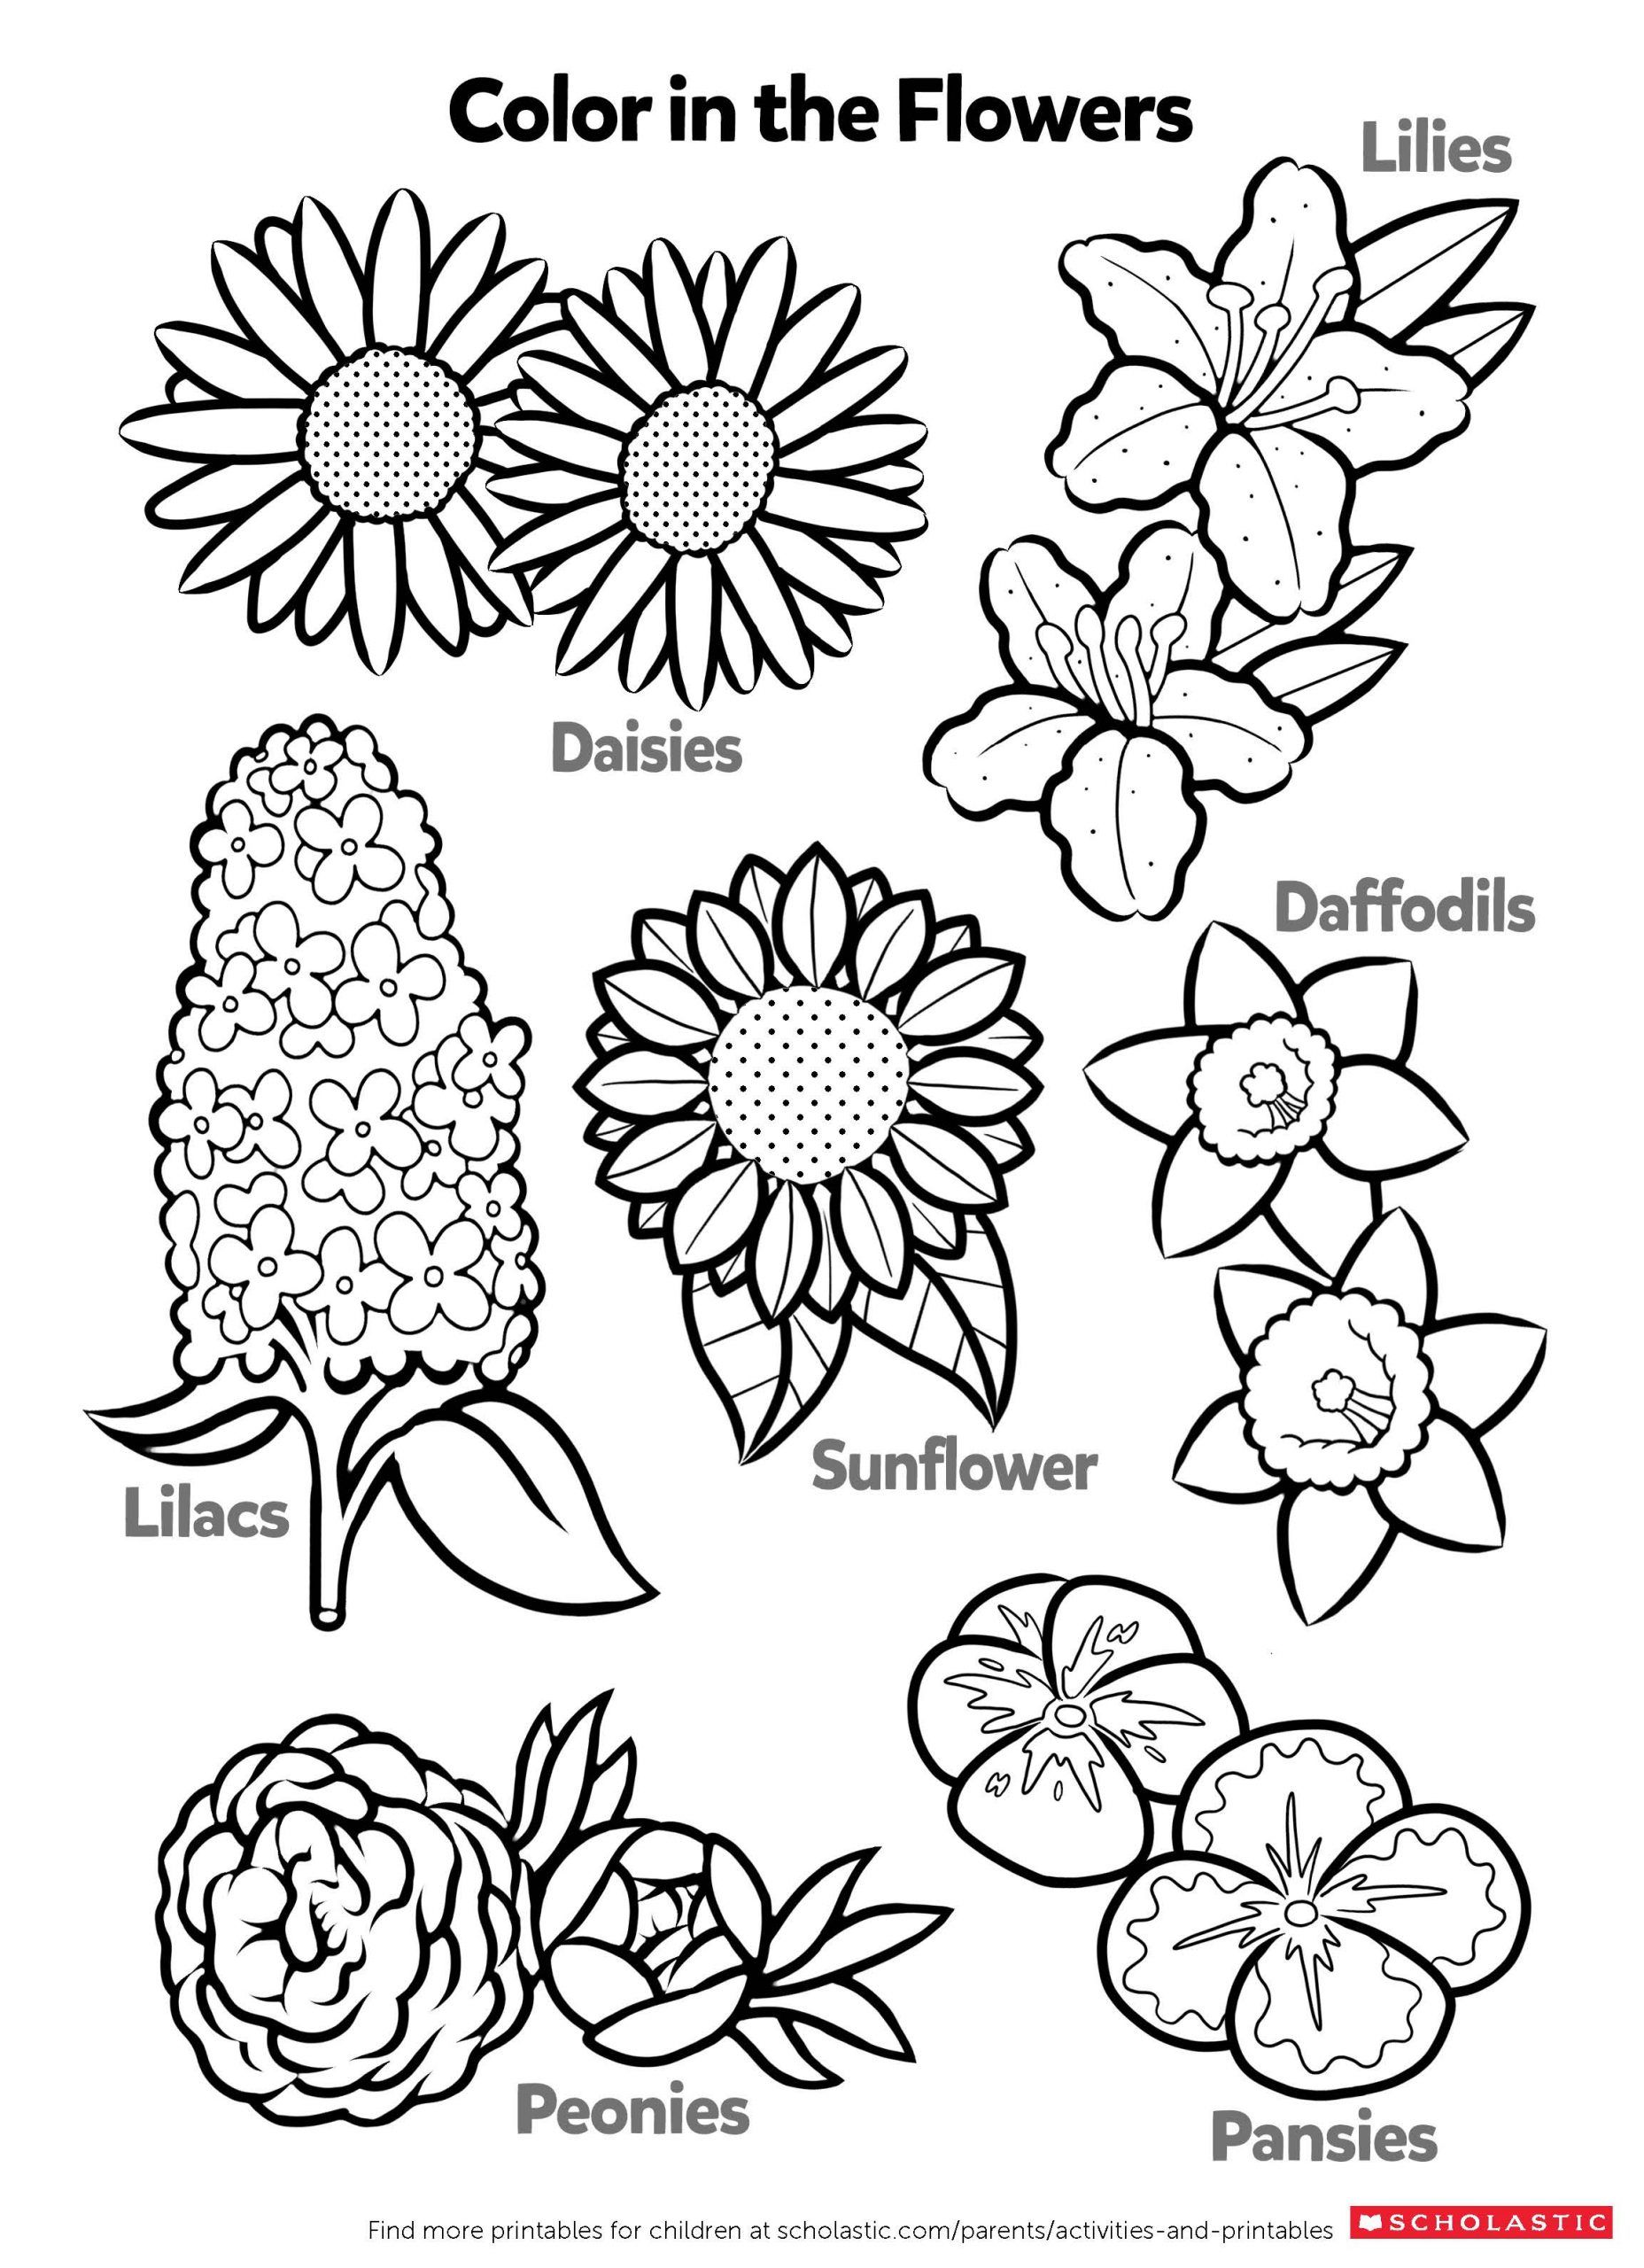 Flower Coloring Pages Preschool Pdf Sheet Free Printable For Preschoolers Colouring Pictures Toddlers Flower Coloring Pages Coloring Pages Kids Coloring Books